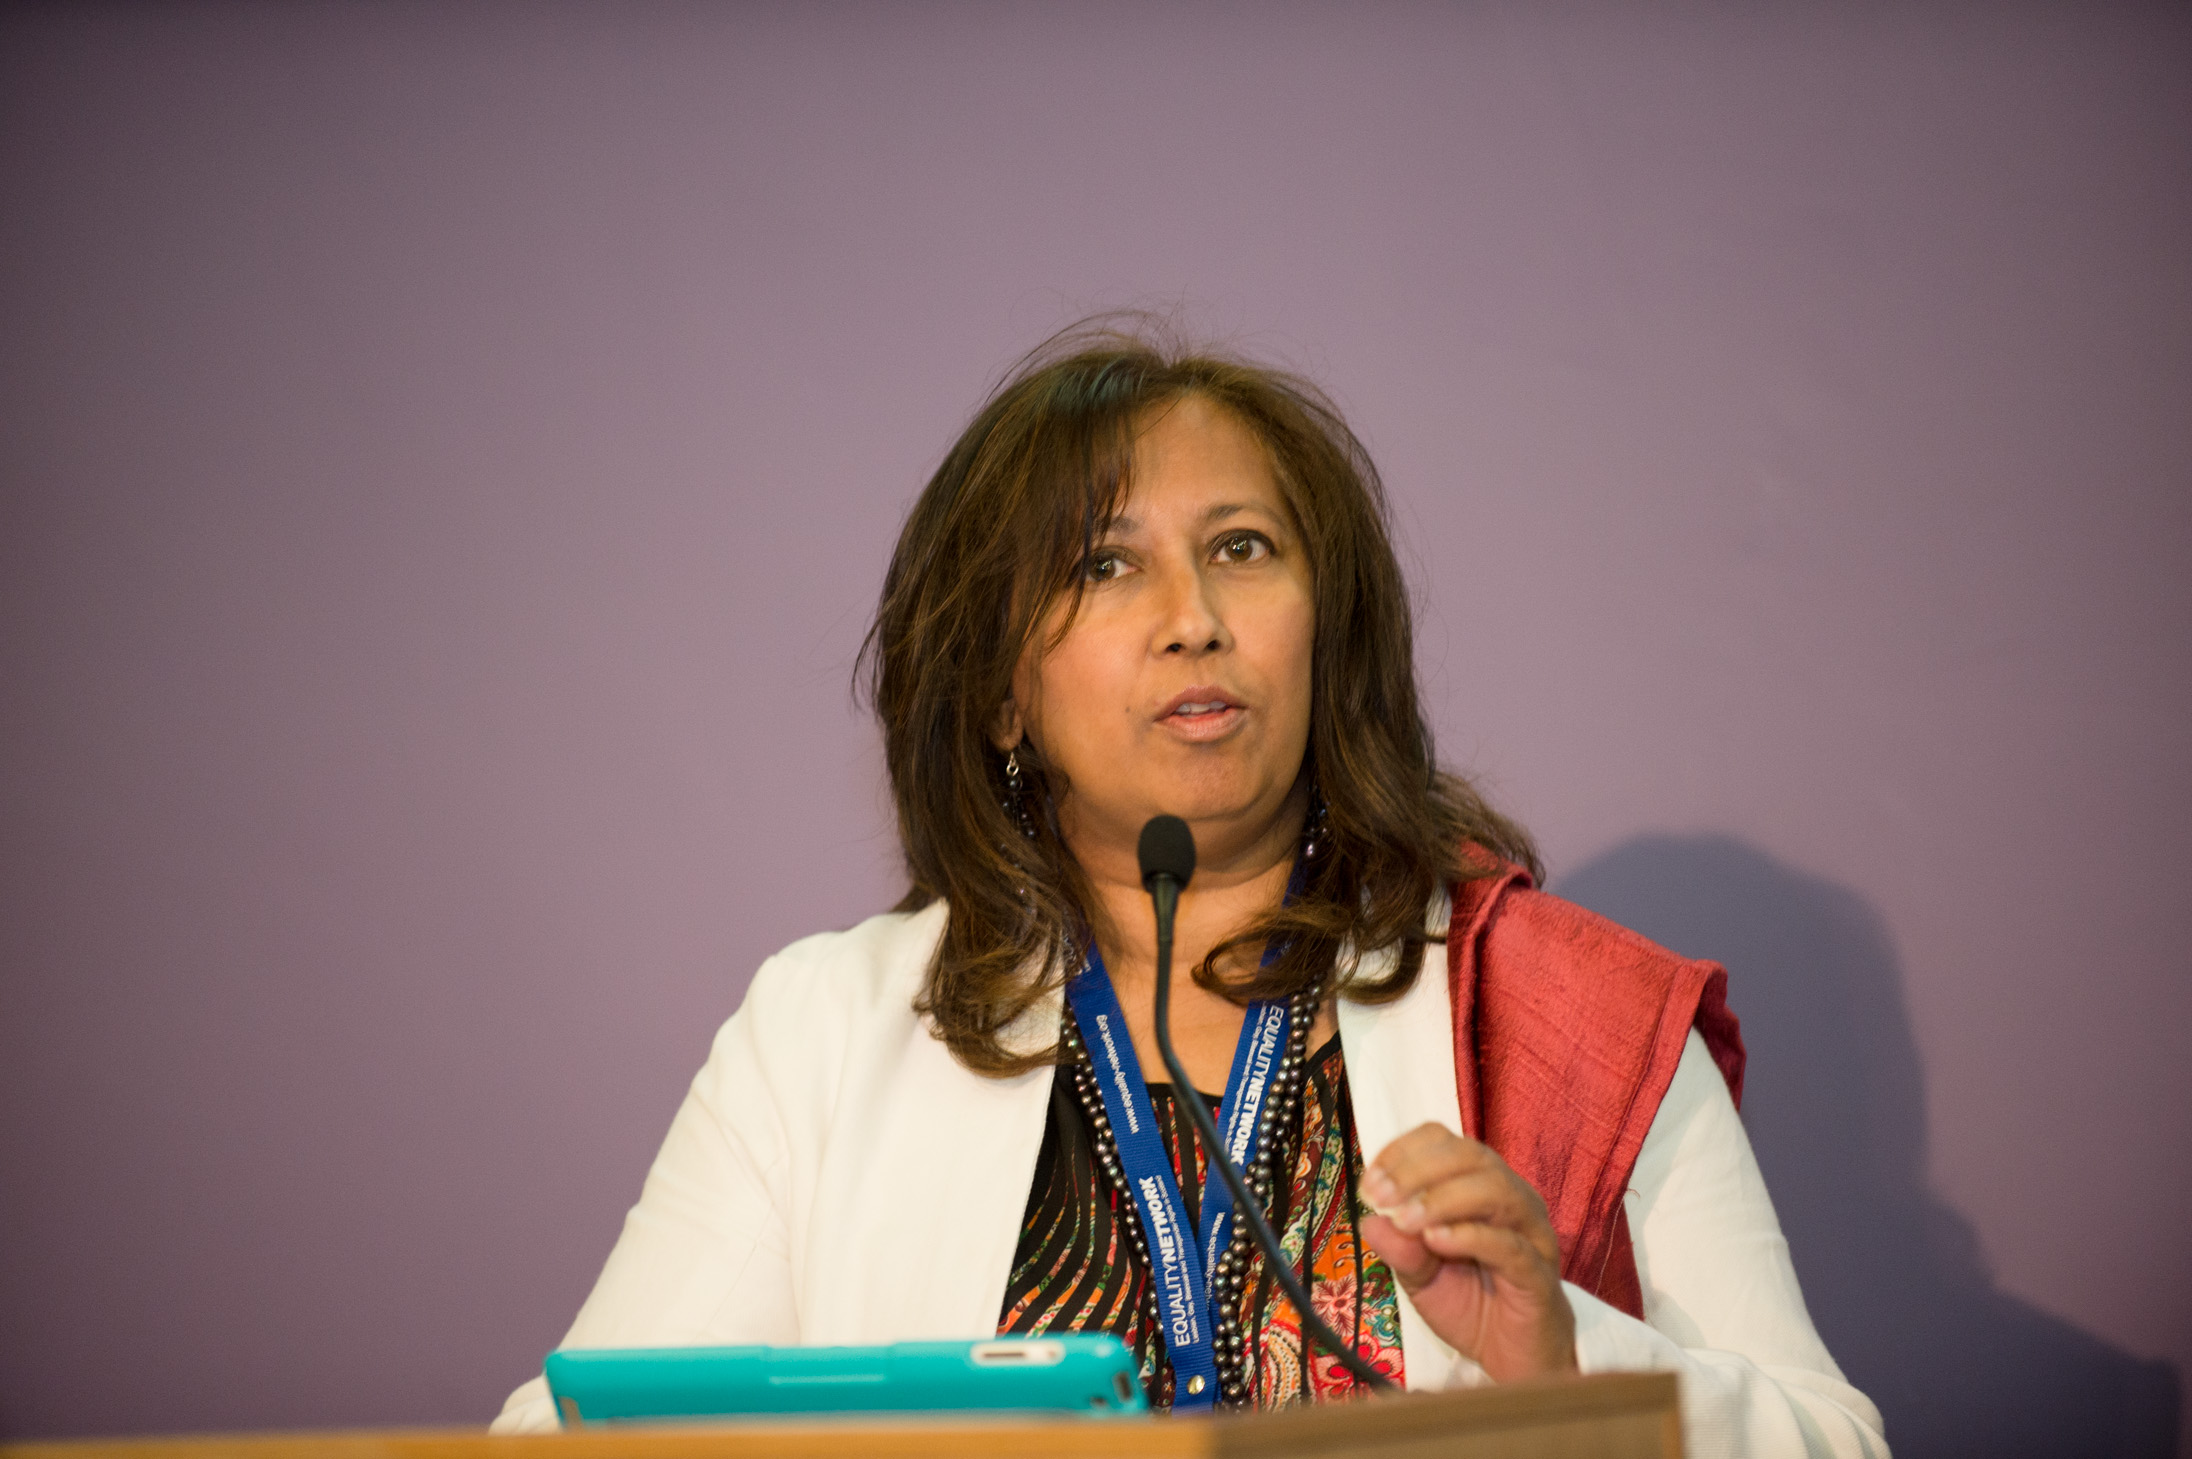 Purna Sen, Chair of Kaleidoscope Trust